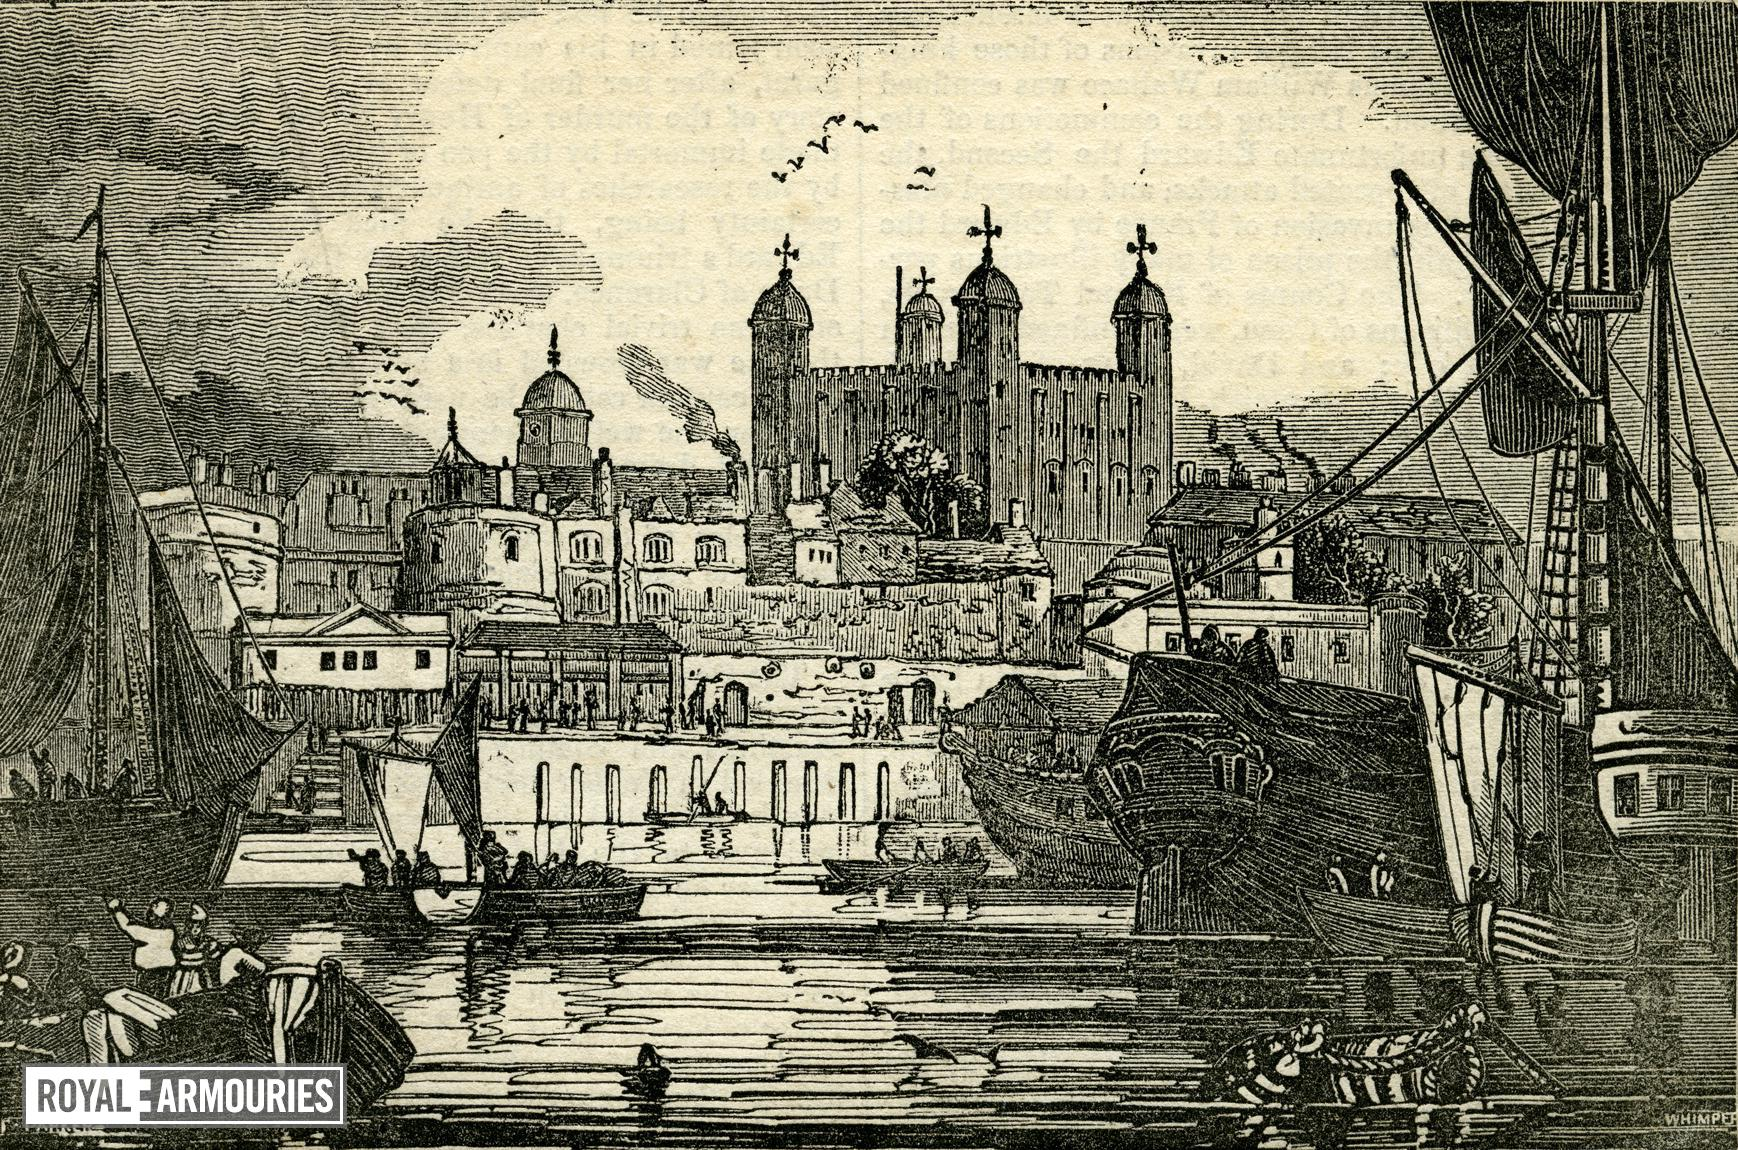 Print View of the Tower of London from the Thames.